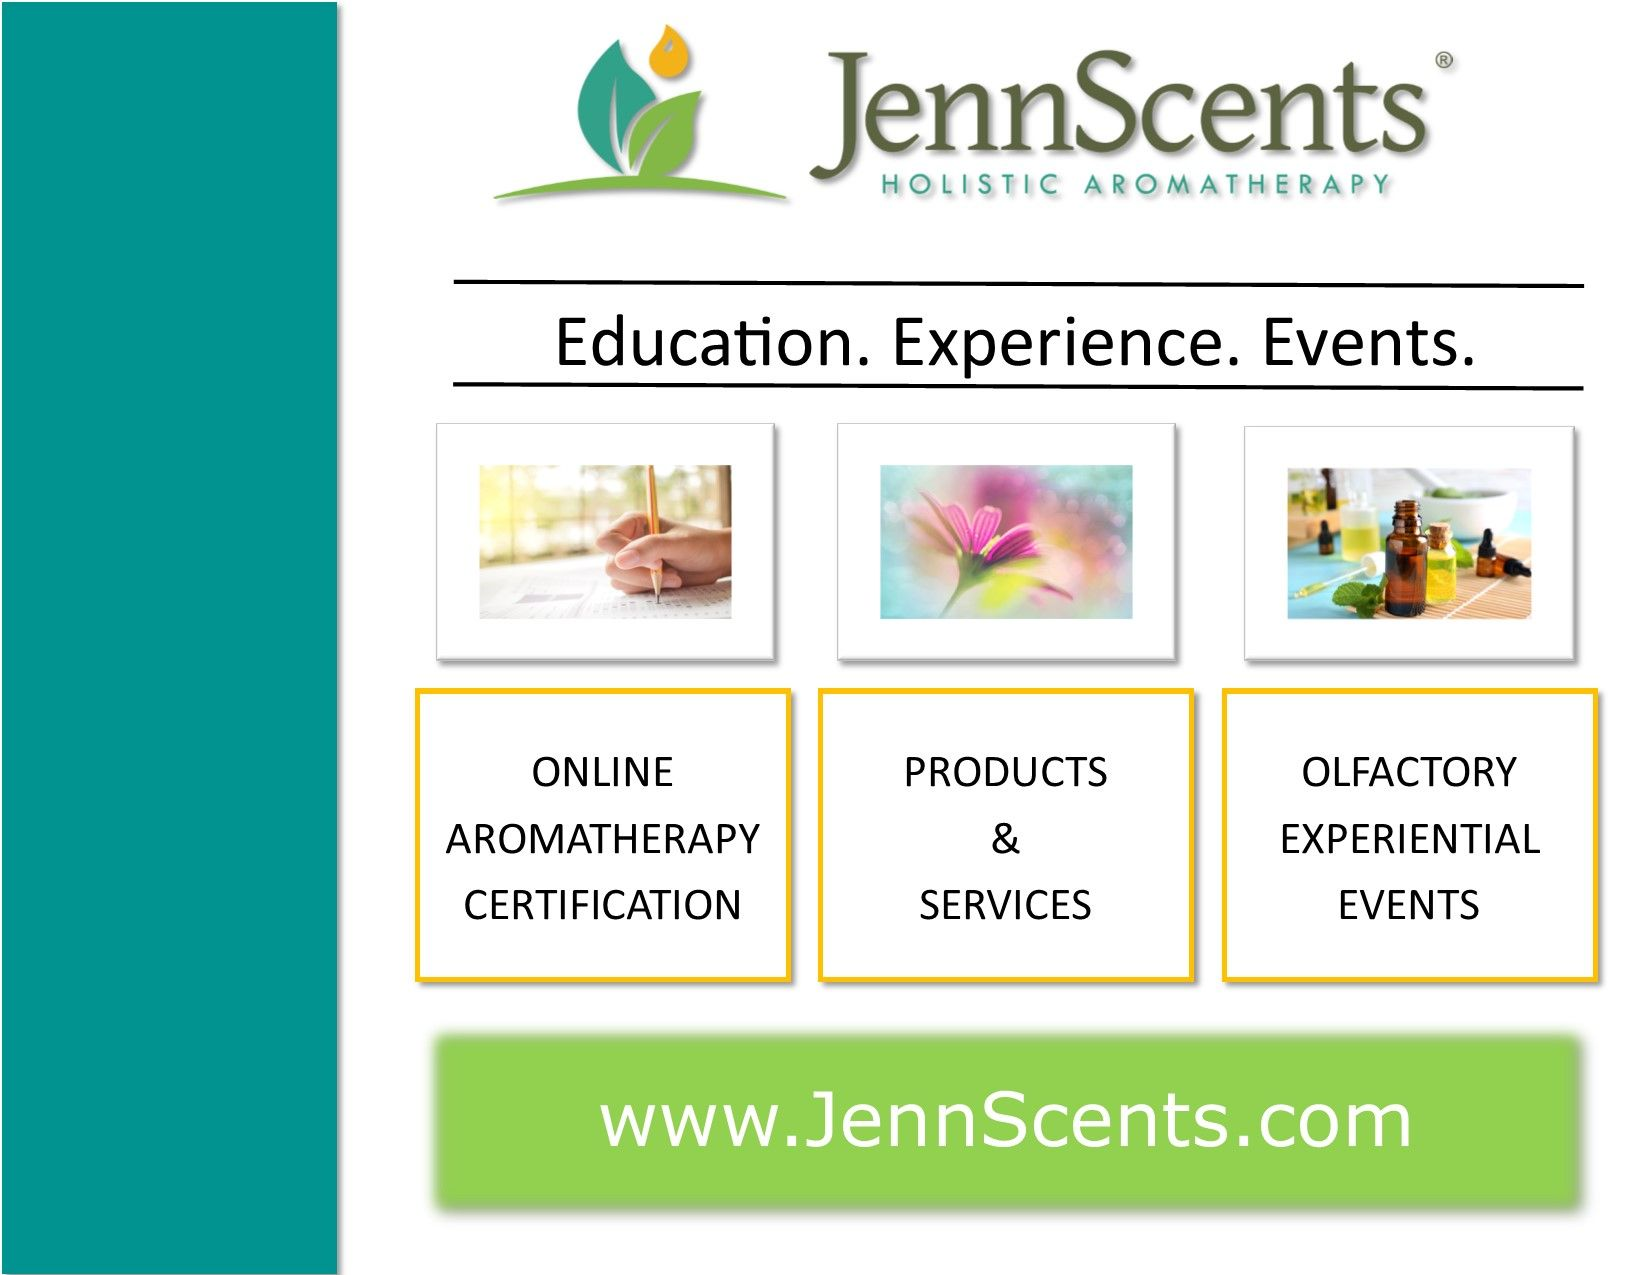 Jennscents Leading The Way In Olfactory Experiences Certification